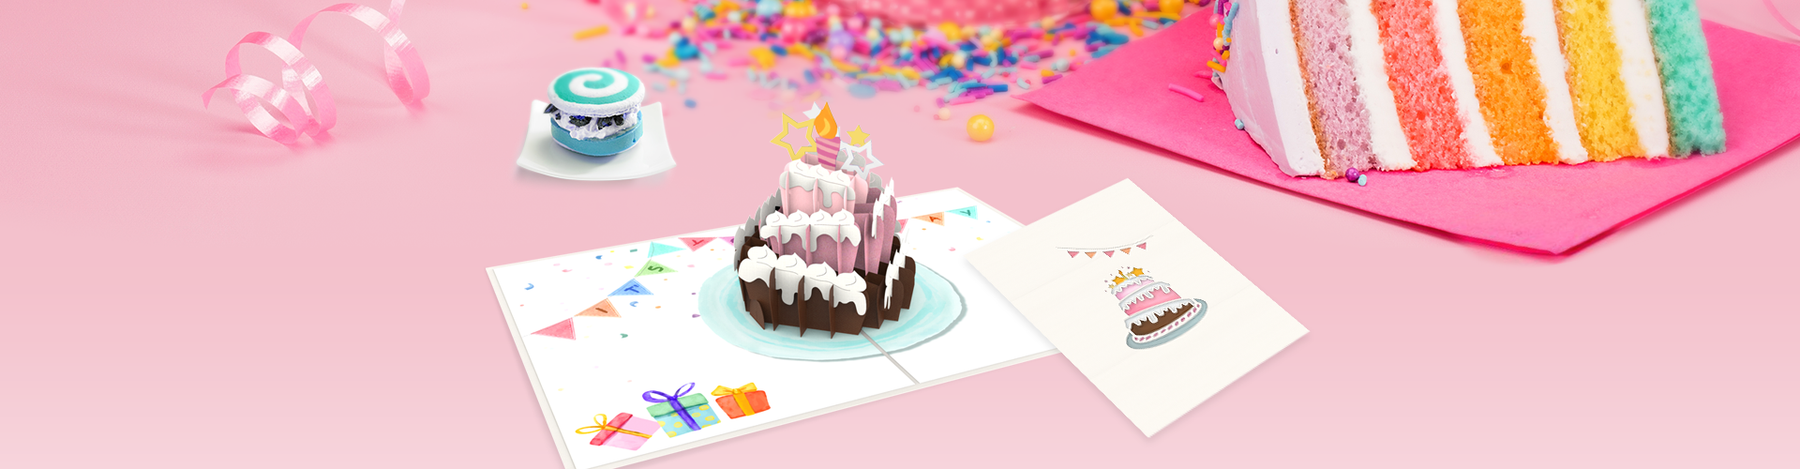 How to make yourself happy with a pop up card?